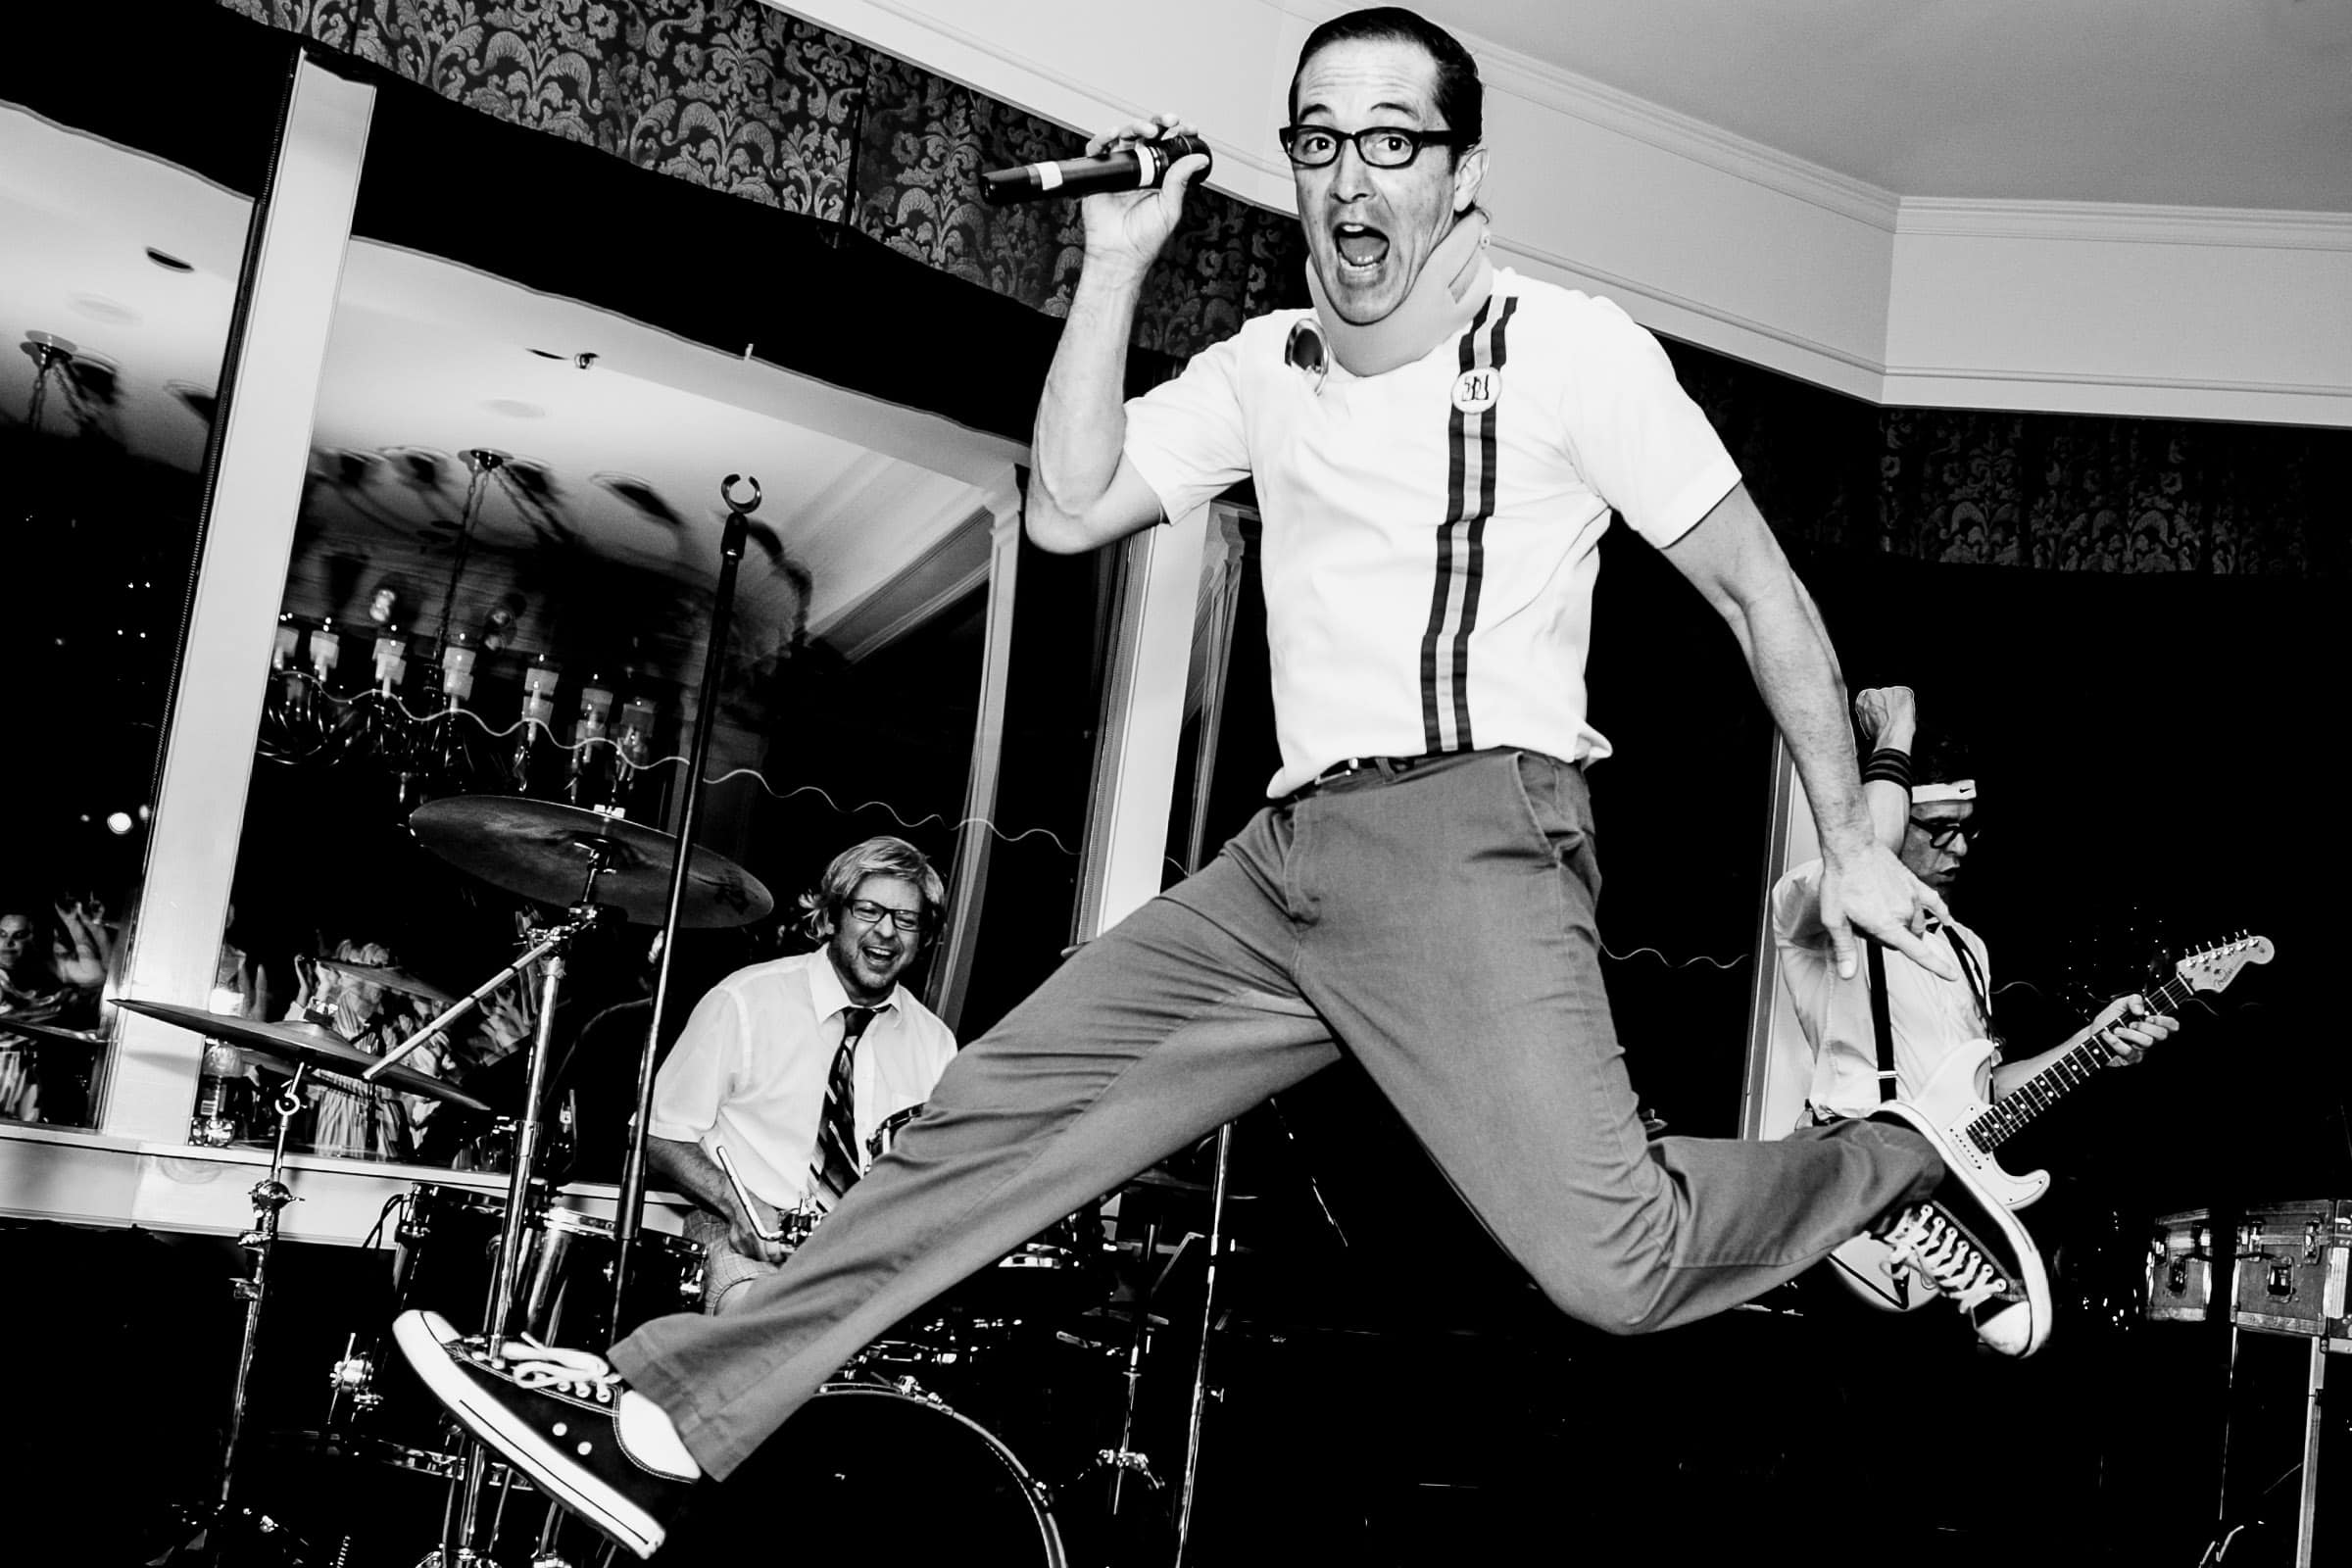 Crazy fun musician dancing and flying during a Waverley Country Club wedding in Lake Oswego, Oregon just outside Portland